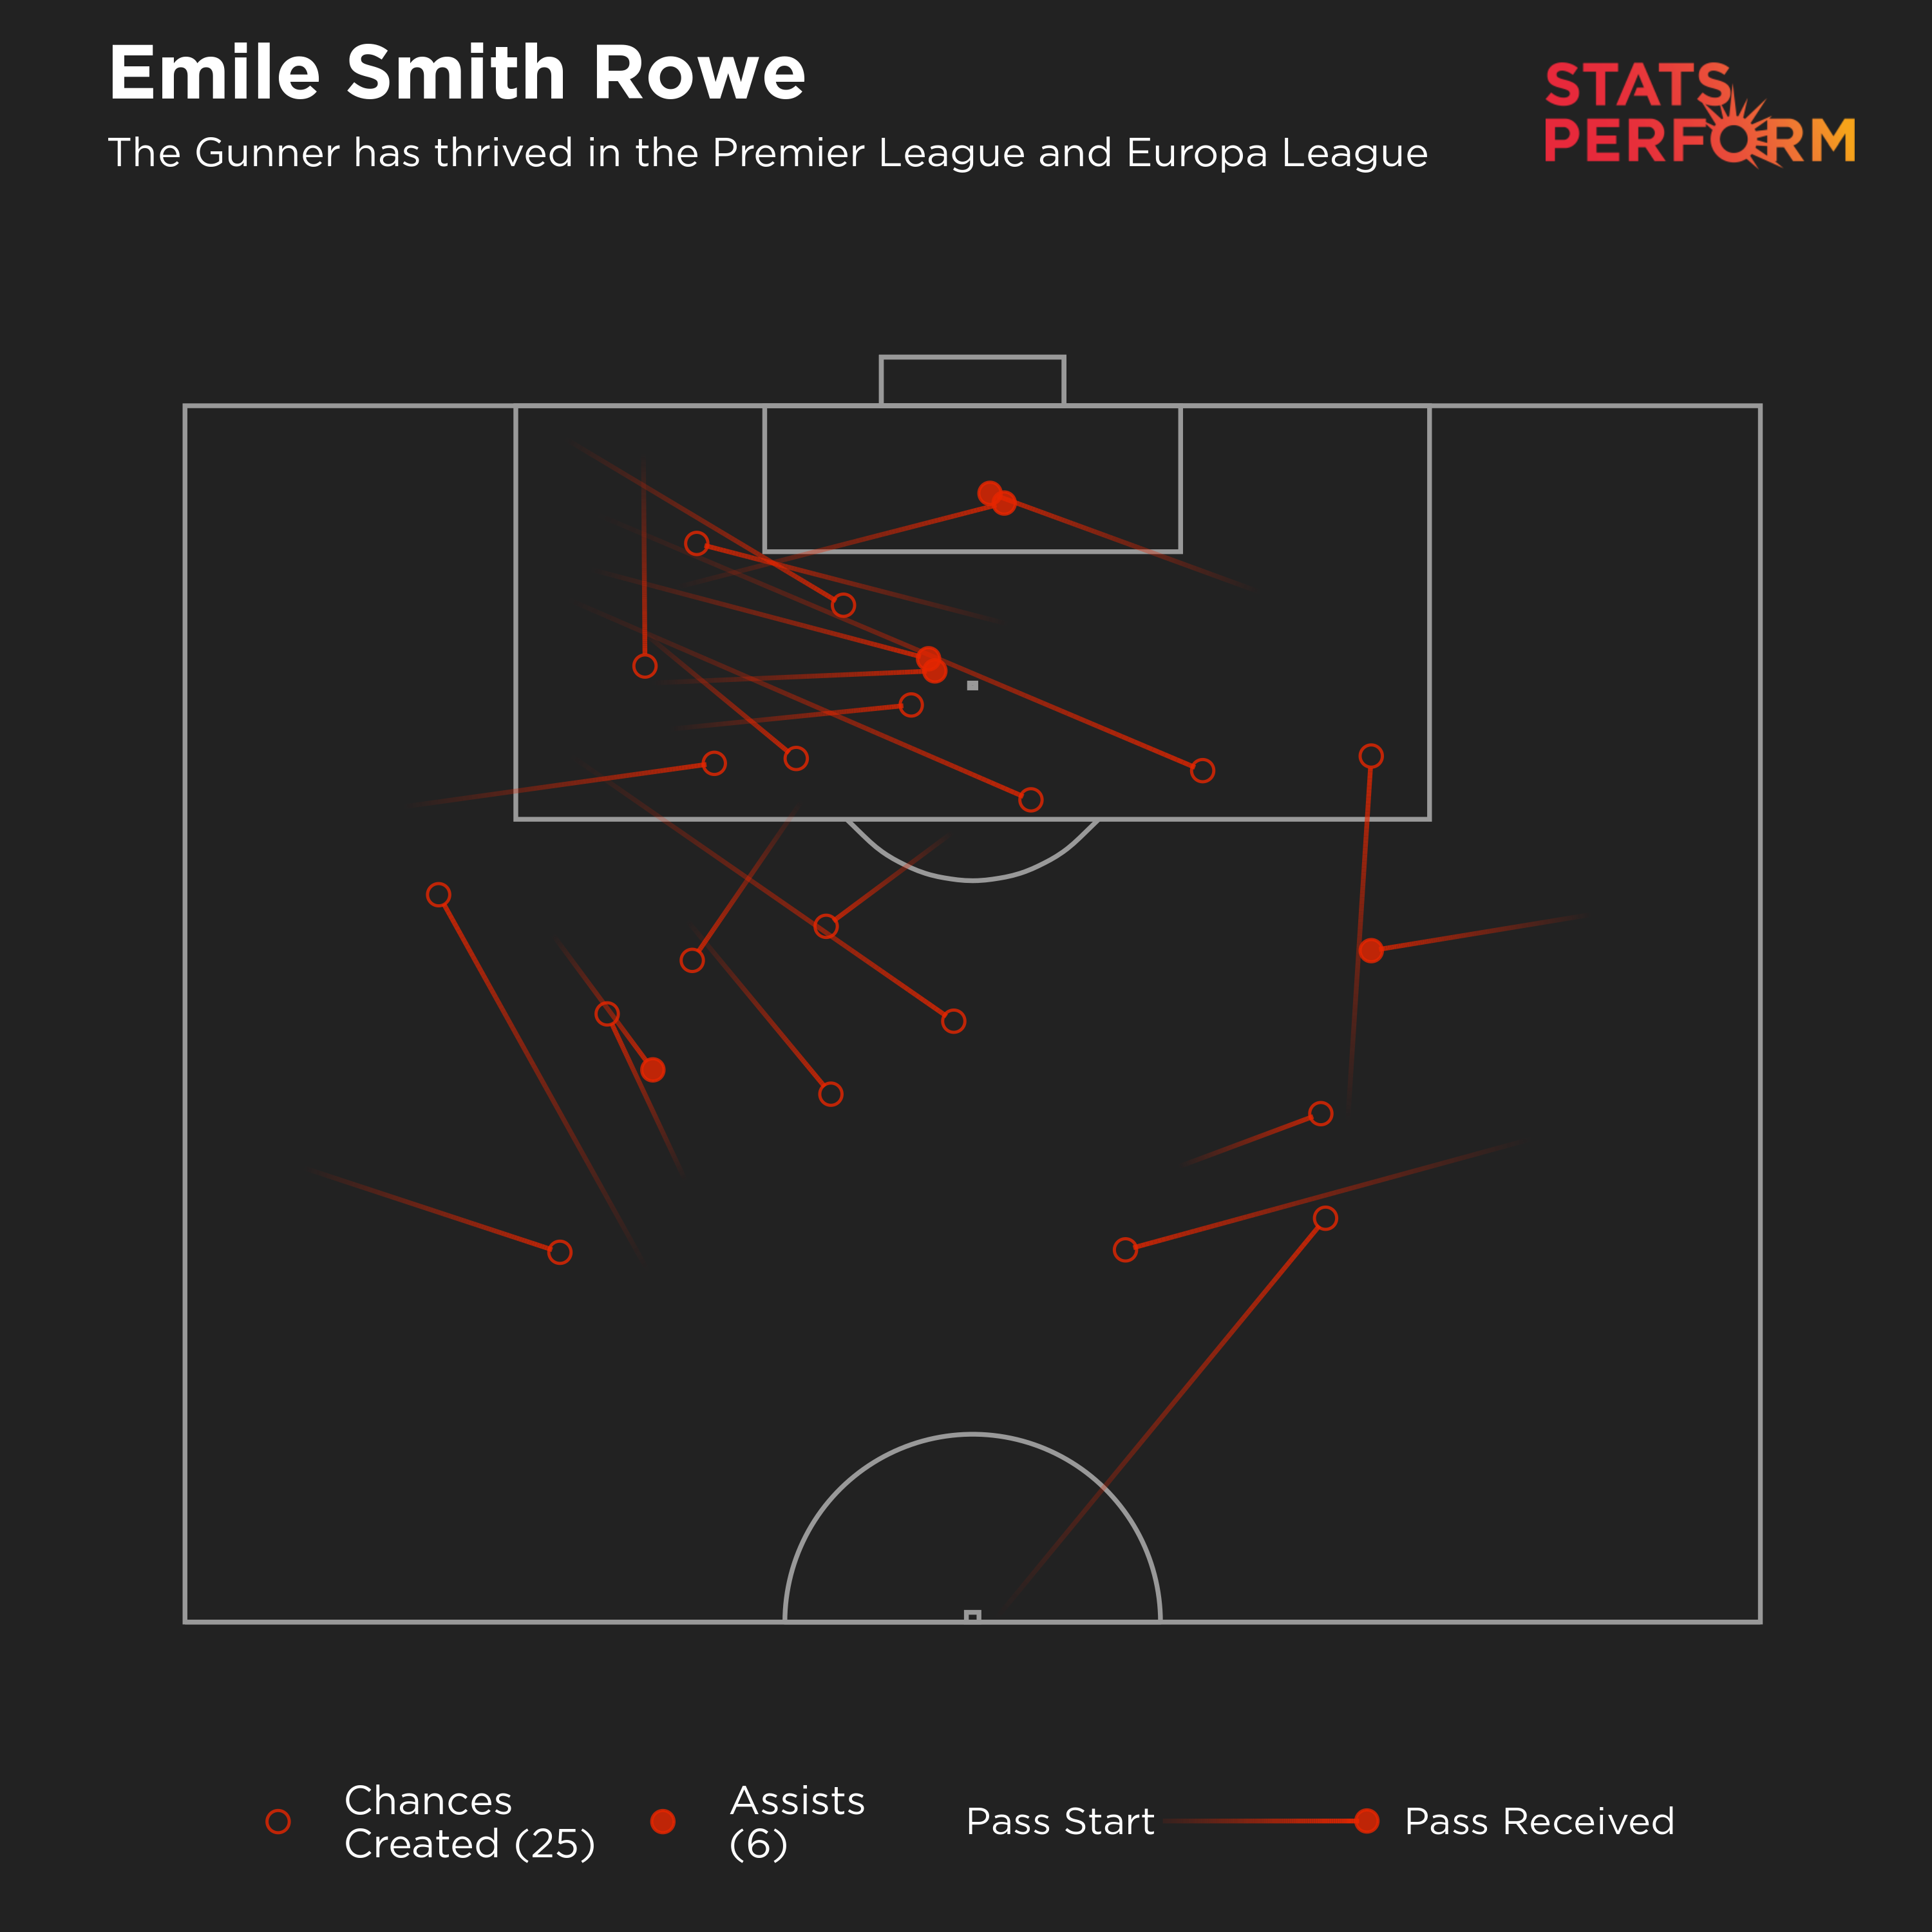 Emile Smith Rowe chances created